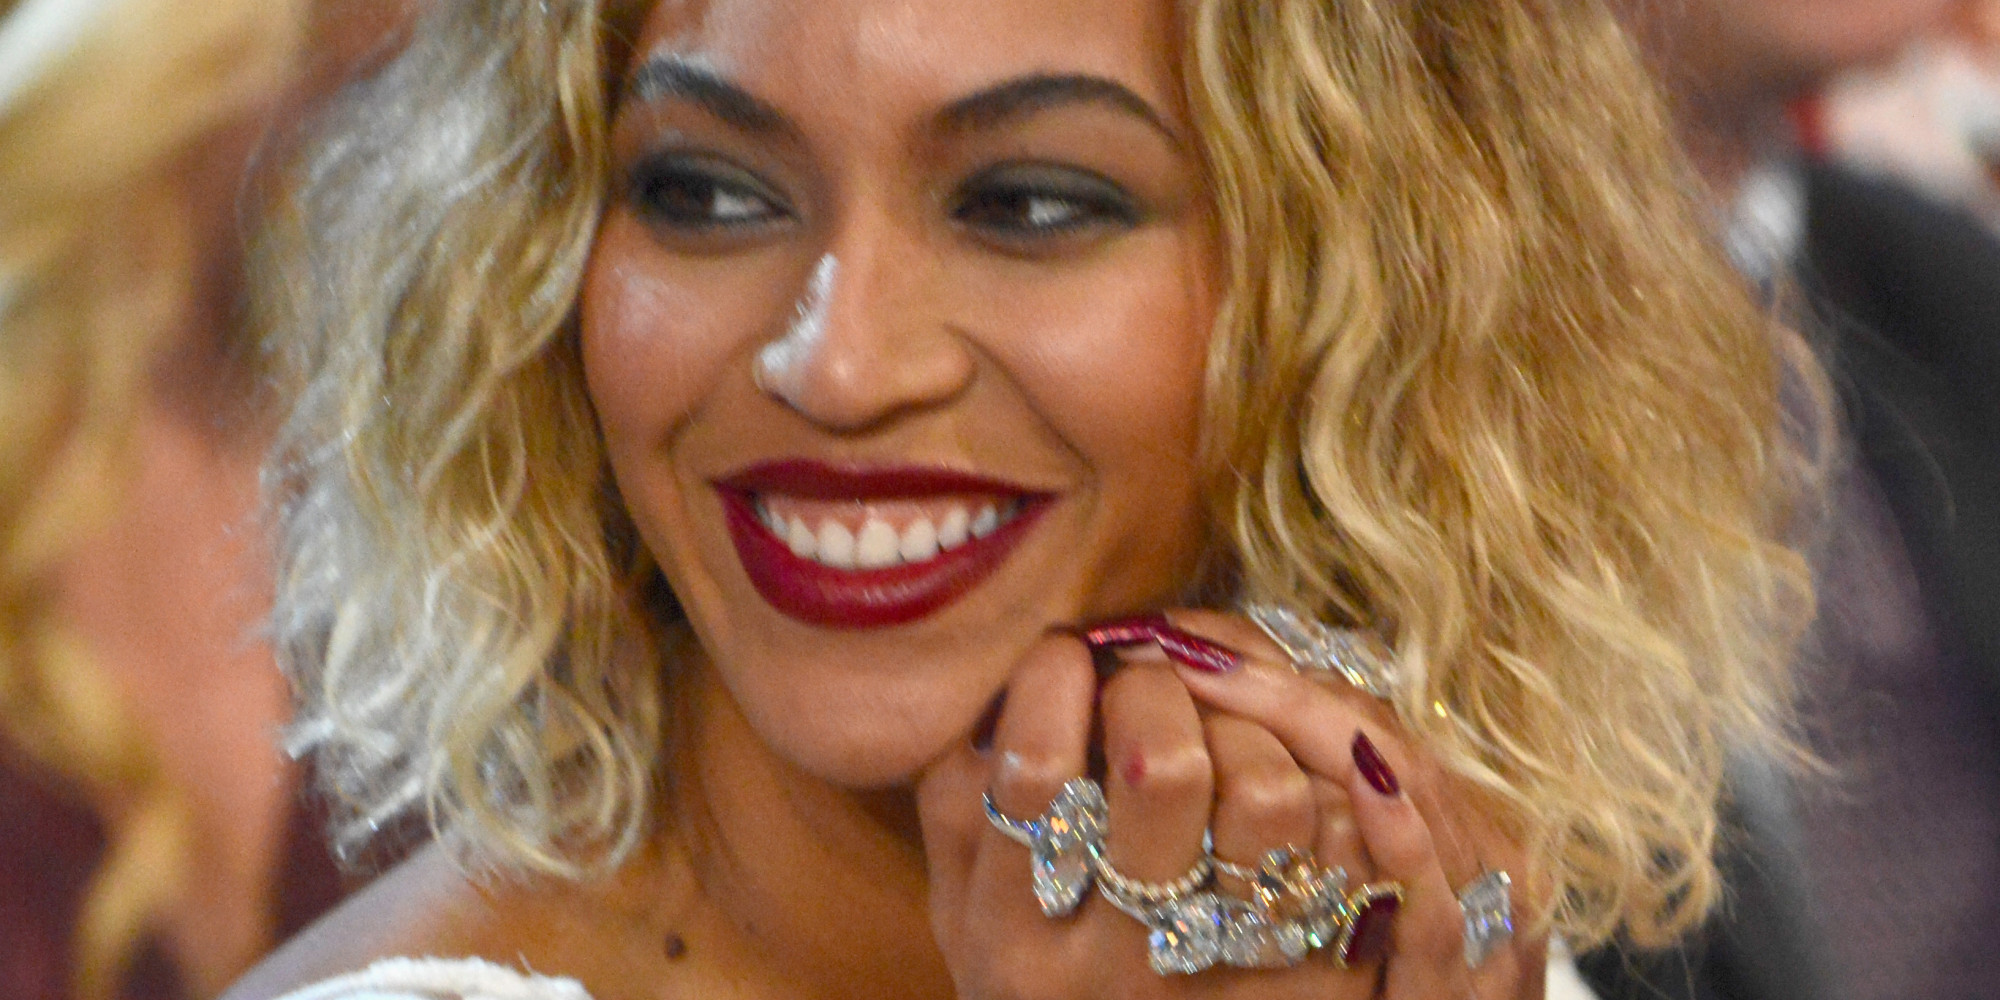 LOS ANGELES, CA - JANUARY 26:  Beyonce attends the 56th GRAMMY Awards at Staples Center on January 26, 2014 in Los Angeles, California.  (Photo by Kevin Mazur/WireImage)